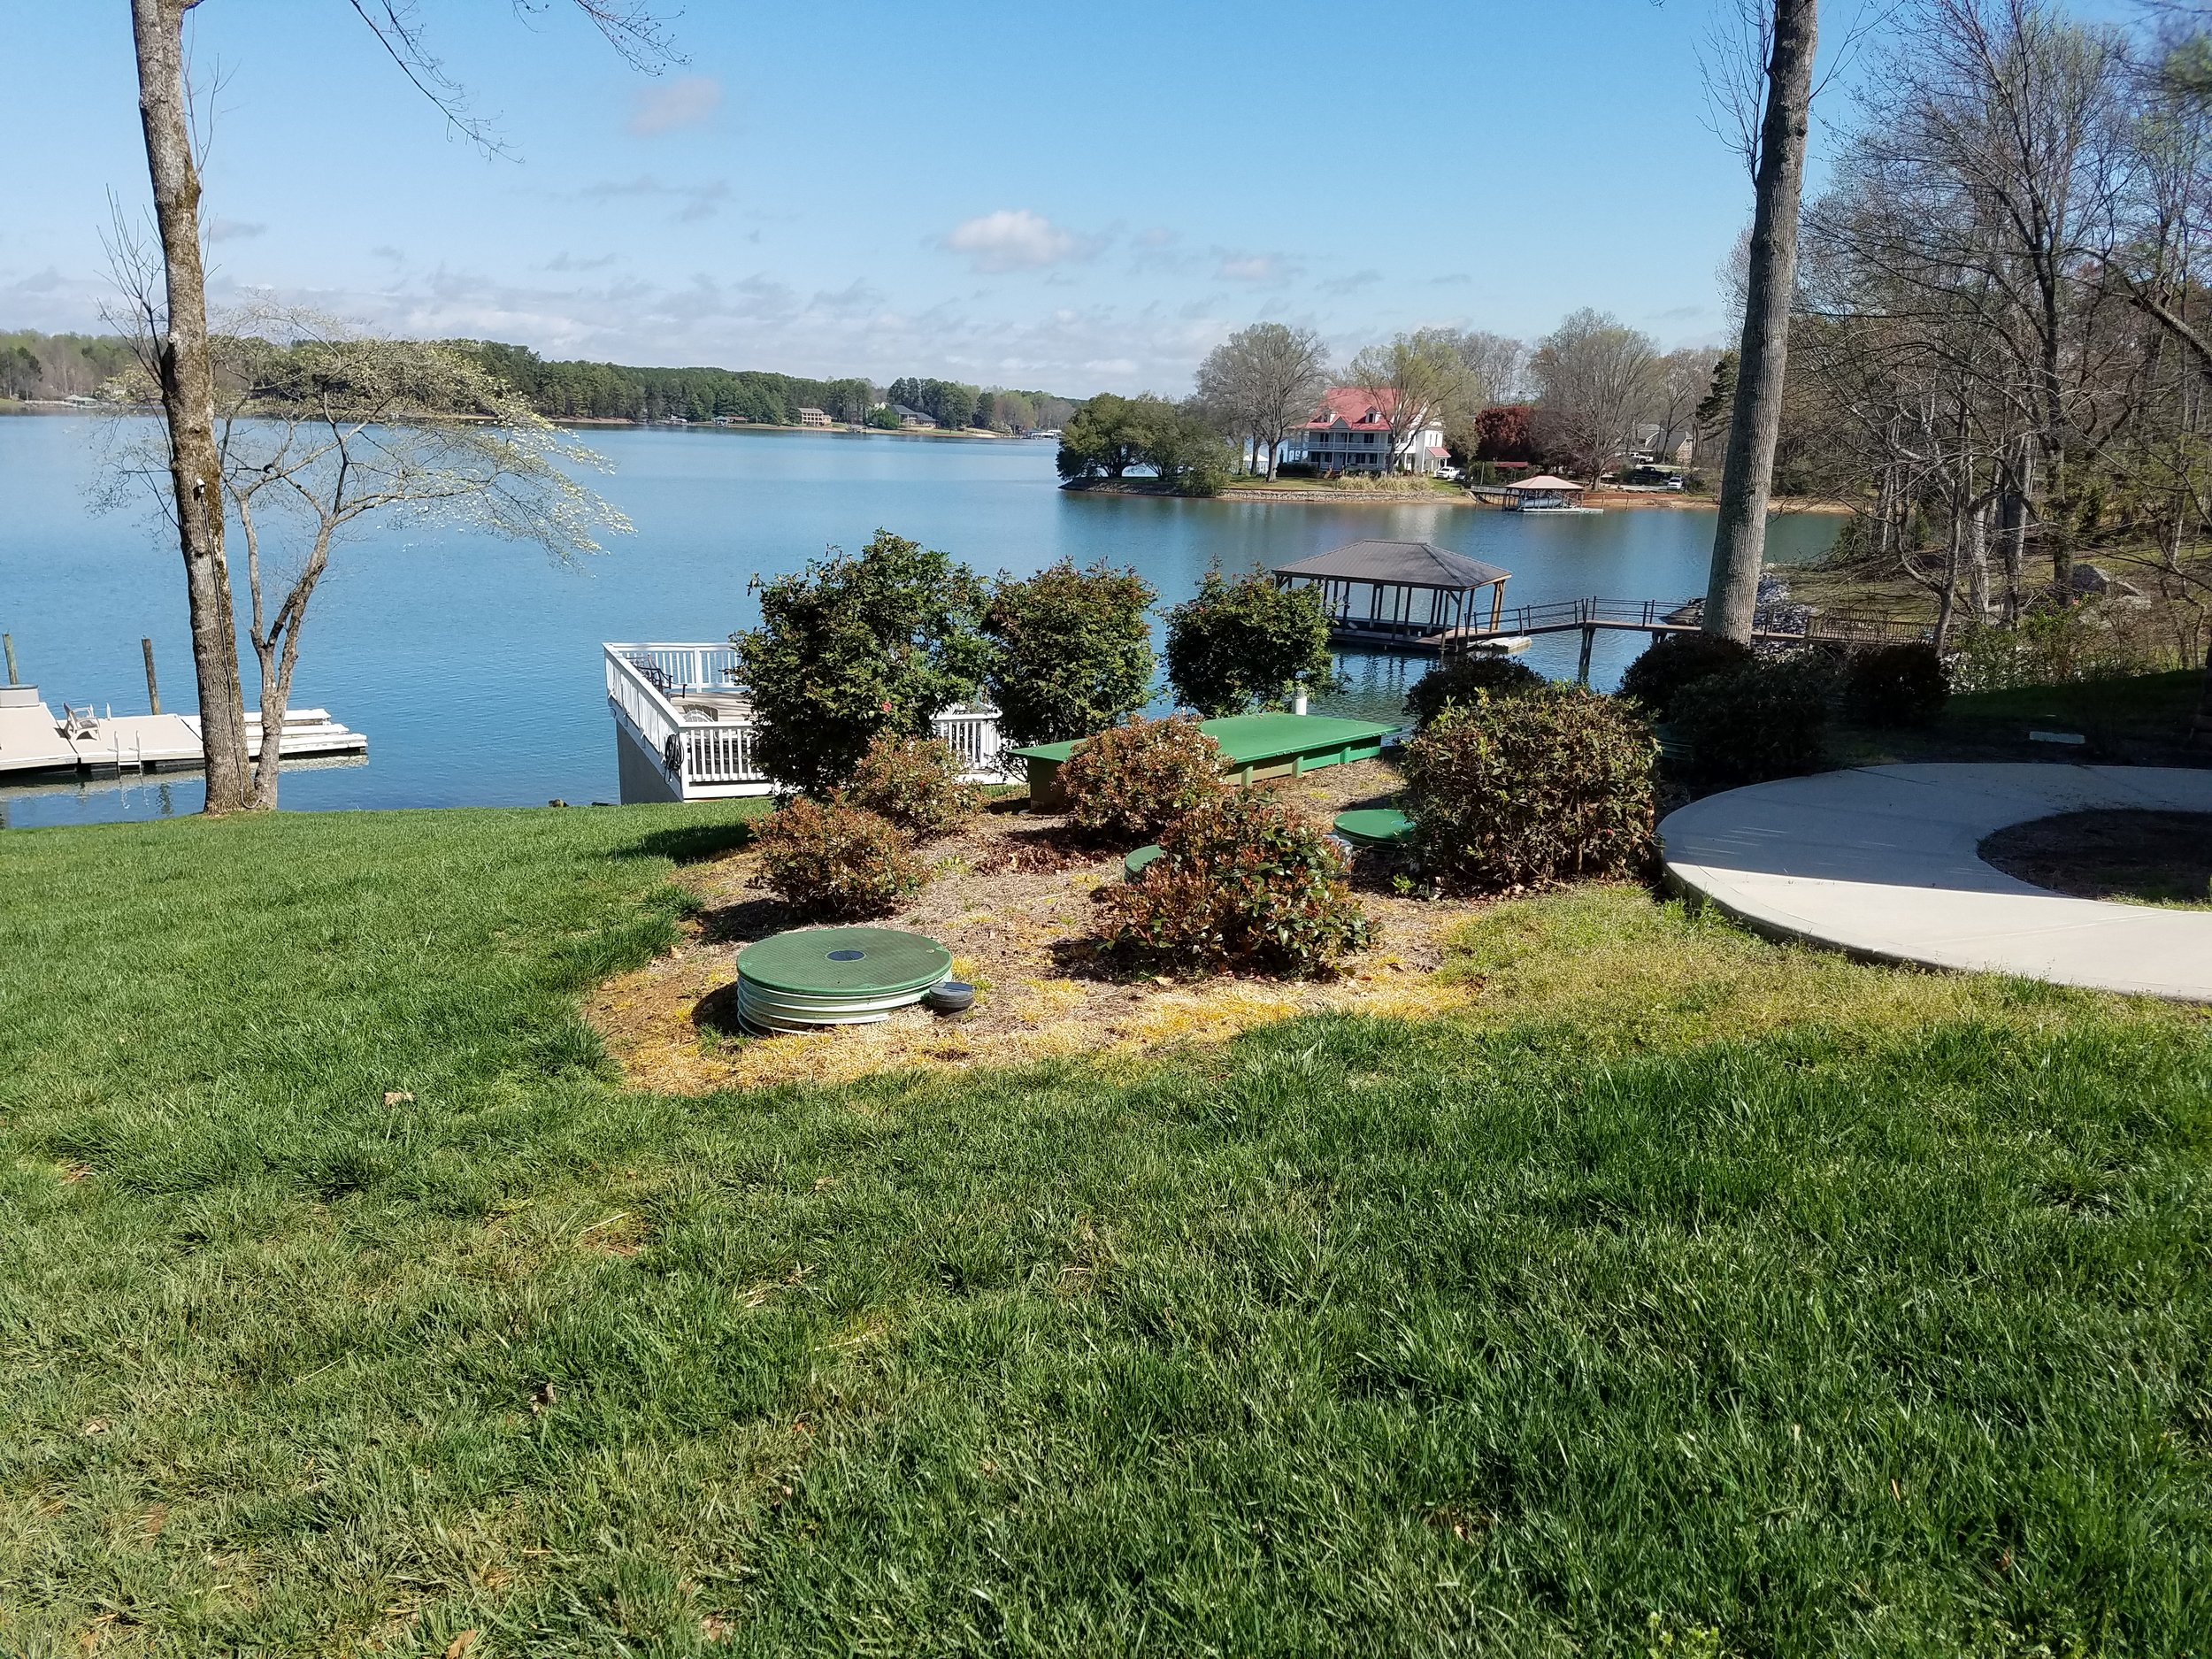 Lake Norman home using the AX20RTUV. Without treatment, this lot would have supported a 2 bedroom house without a pool. With Advantex, the homeowner was able to build a 3 bedroom home and a pool.